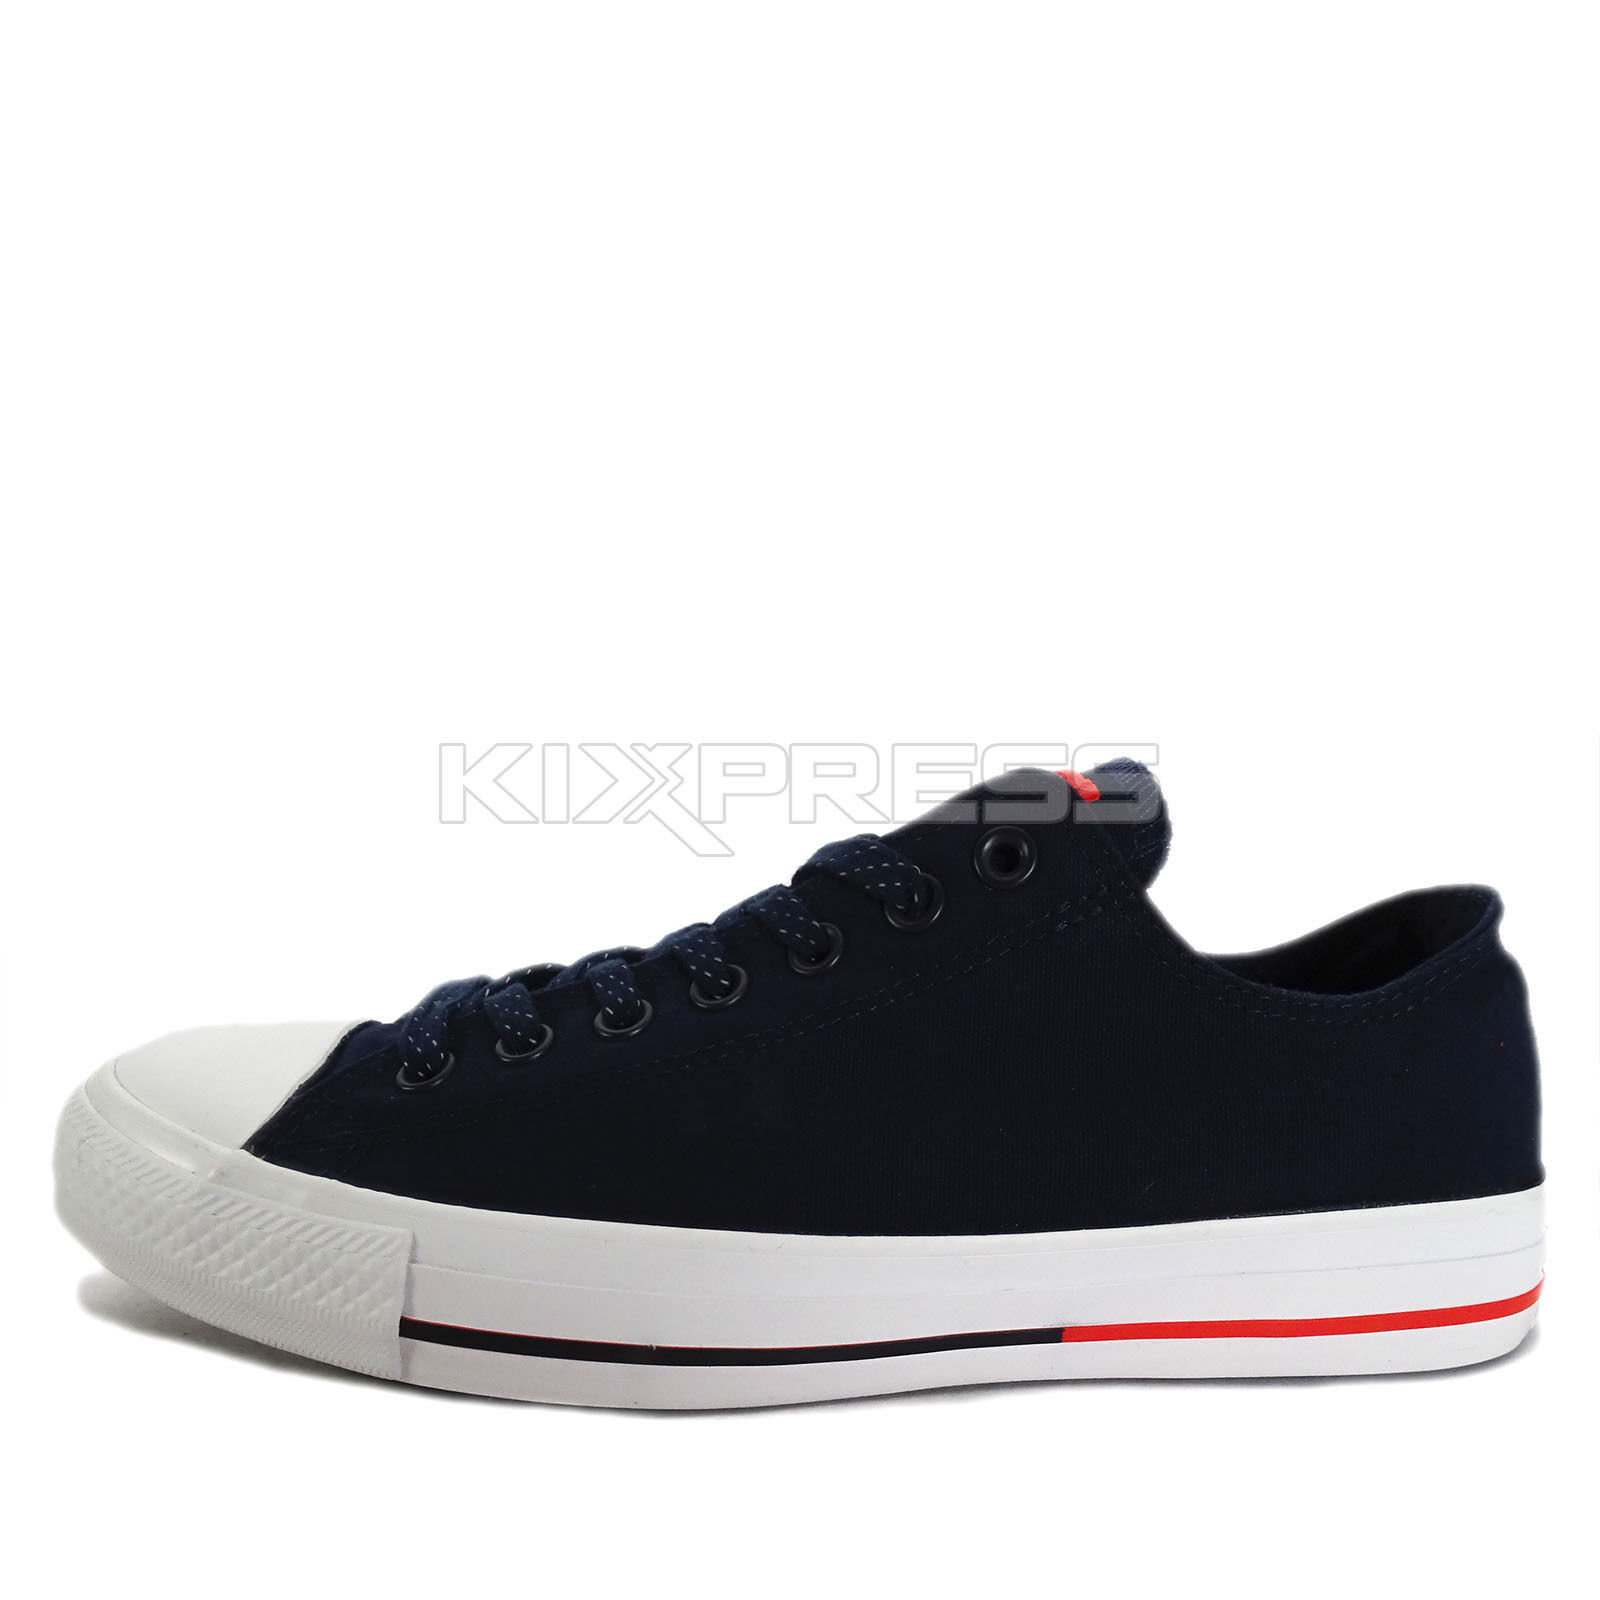 Converse Chuck Taylor All Star [153797C] Casual Navy/White-Red